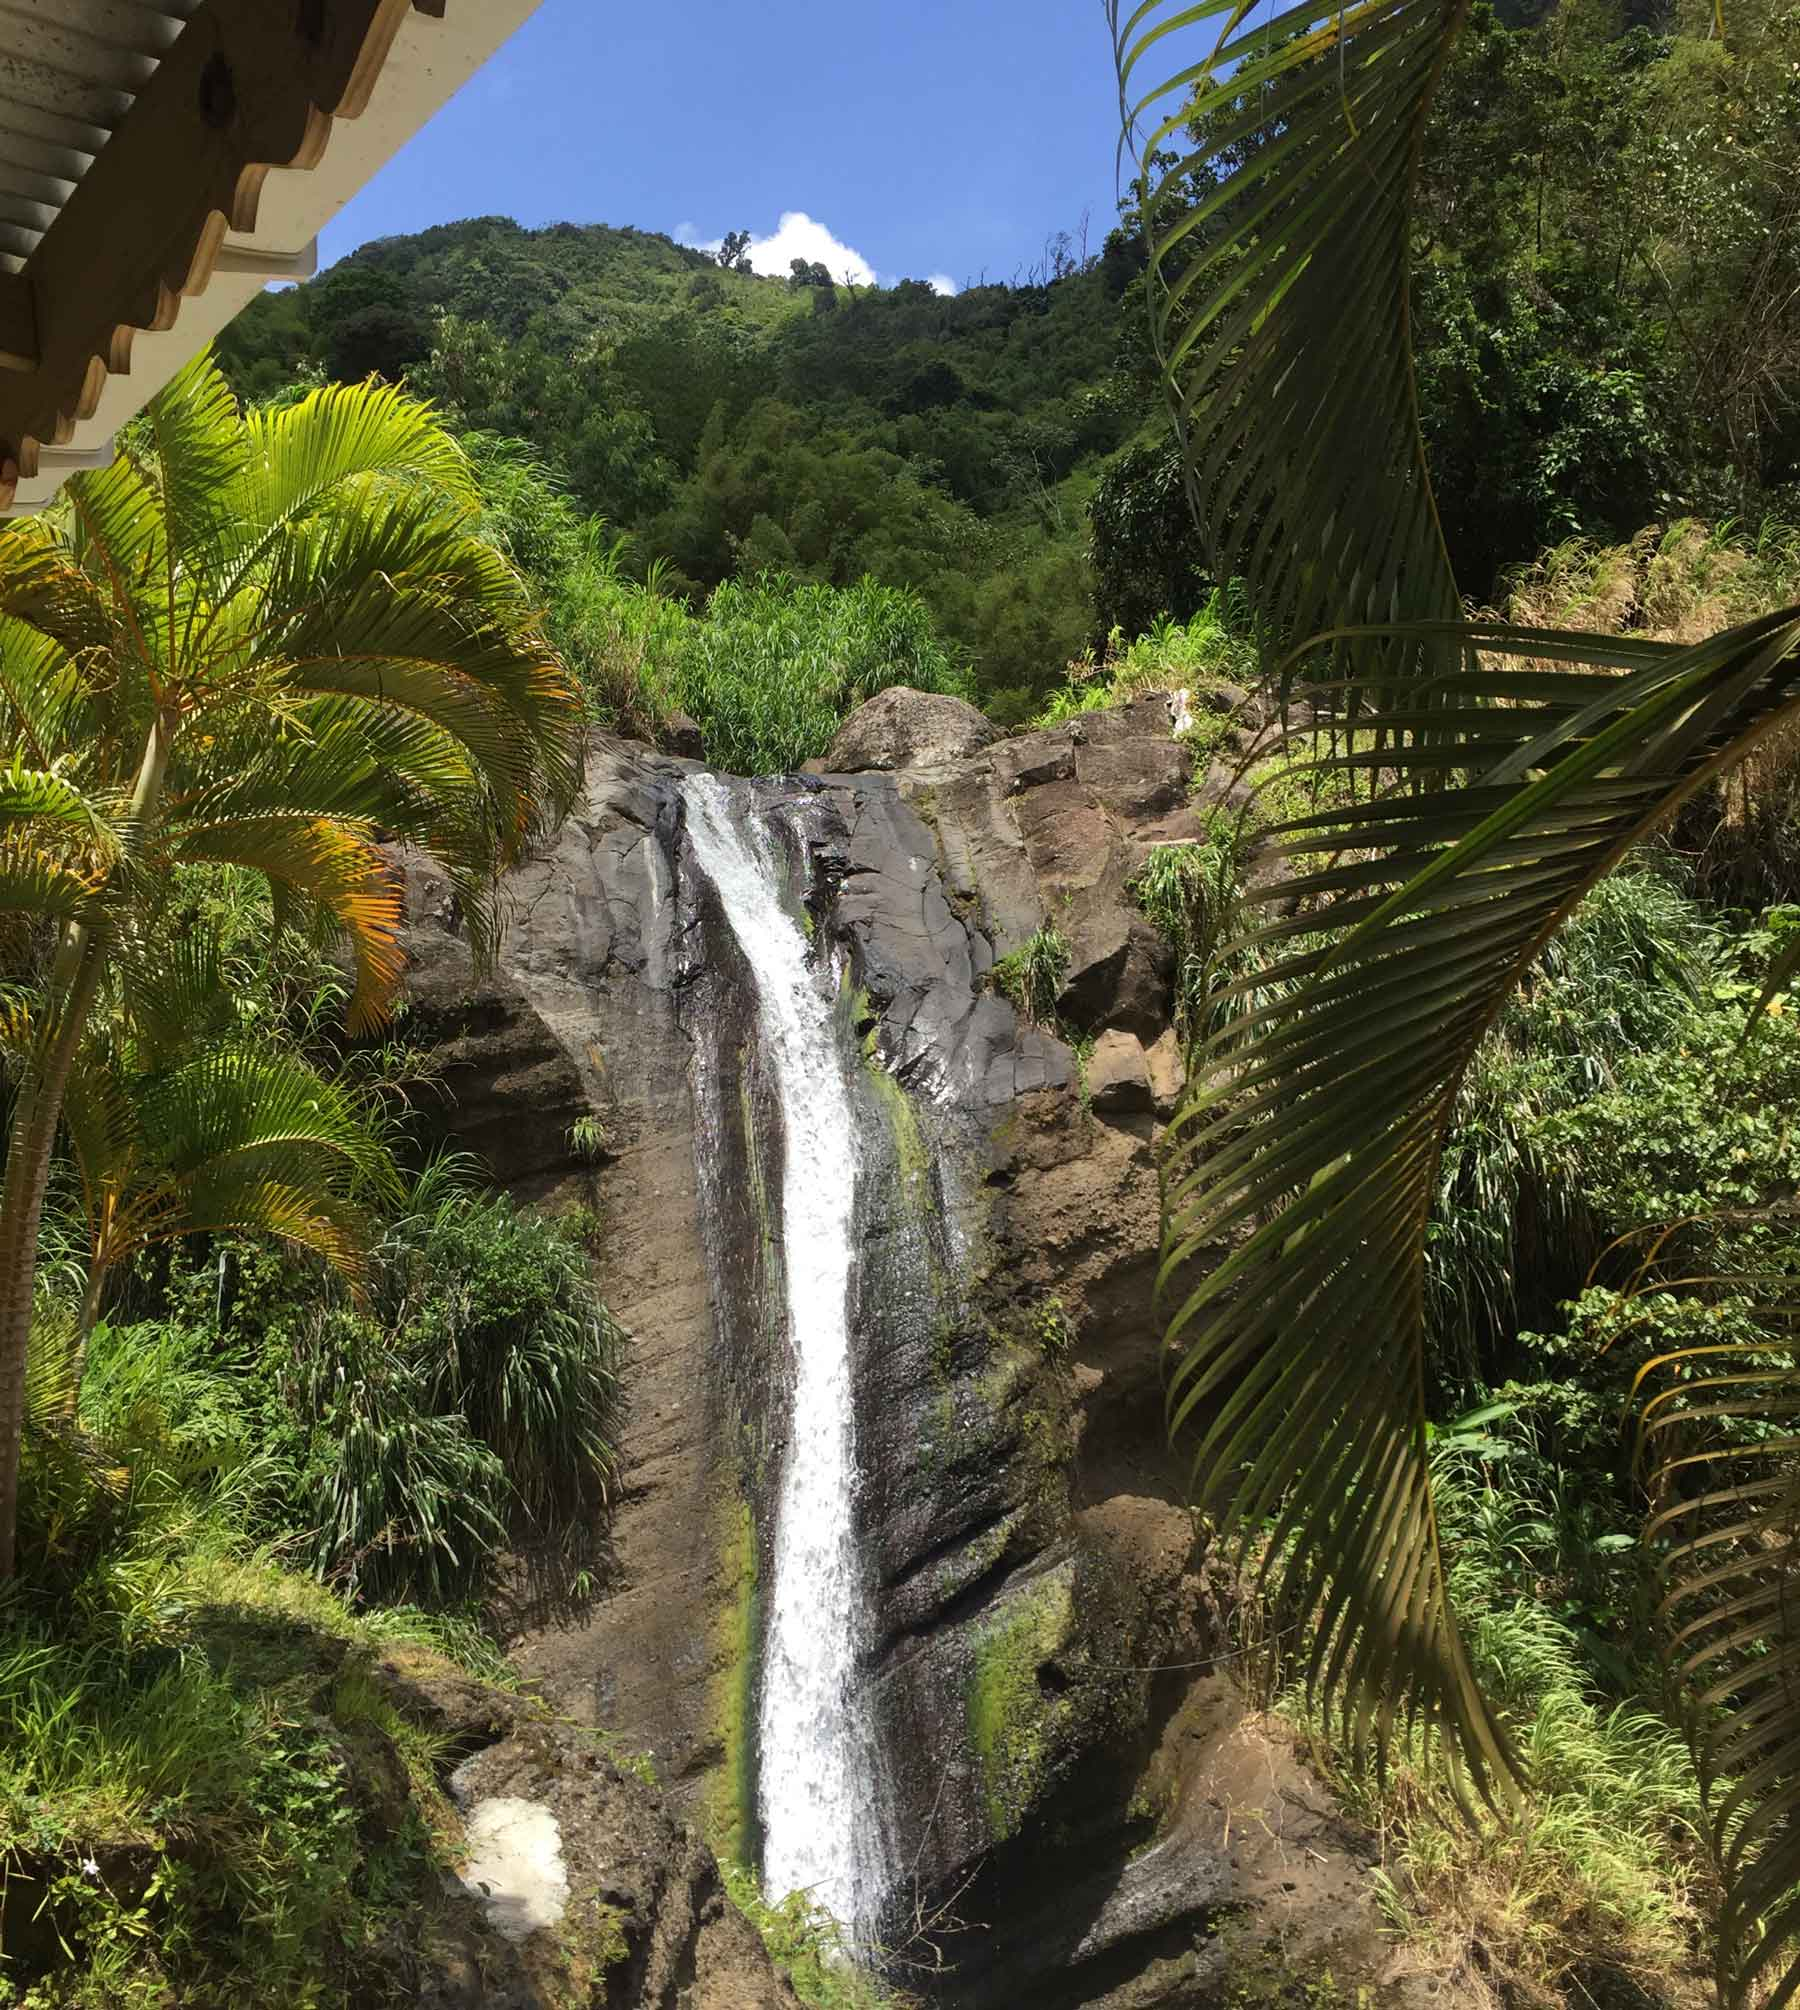 Sugar and spice: why you've got to go to Grenada | loveexploring com